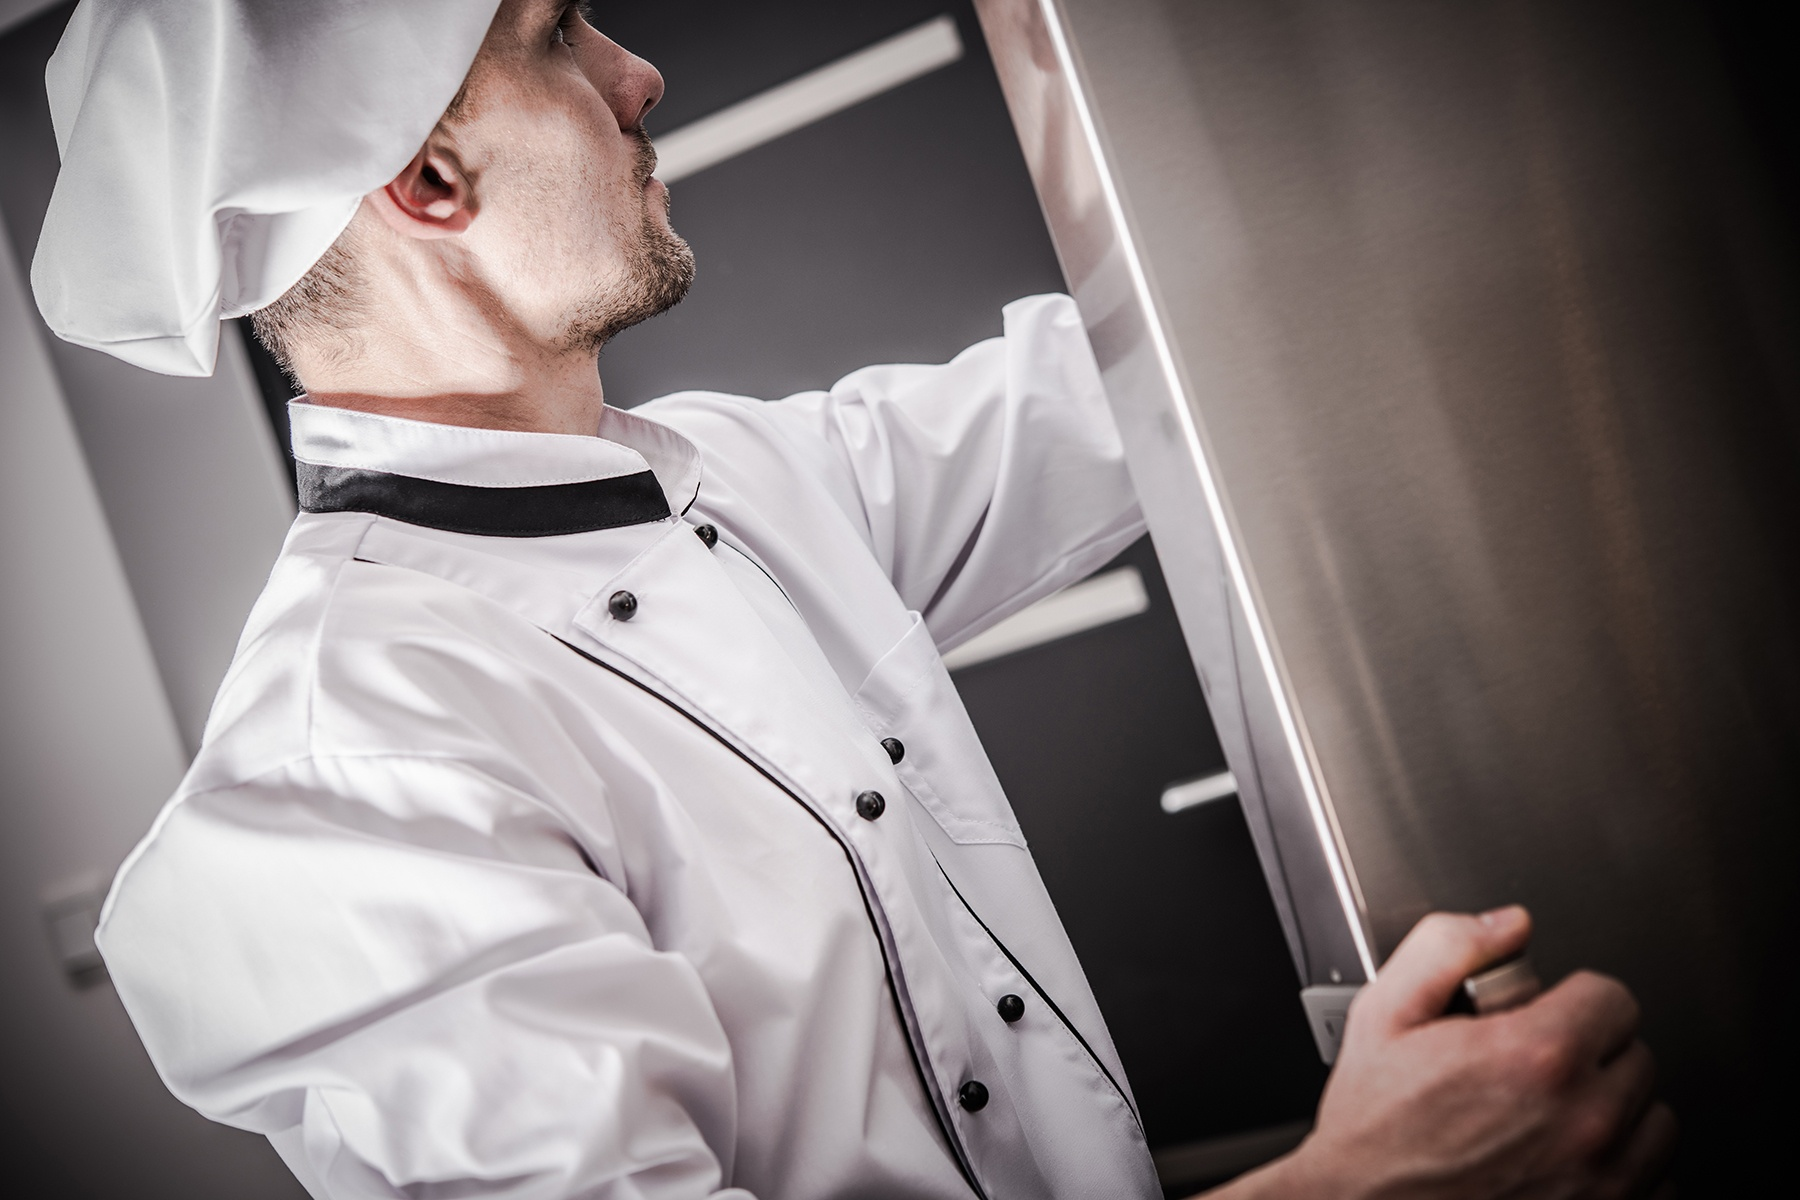 Advantages Of Adding Larger Walk-in Chiller In Your Restaurant And Other Businesses